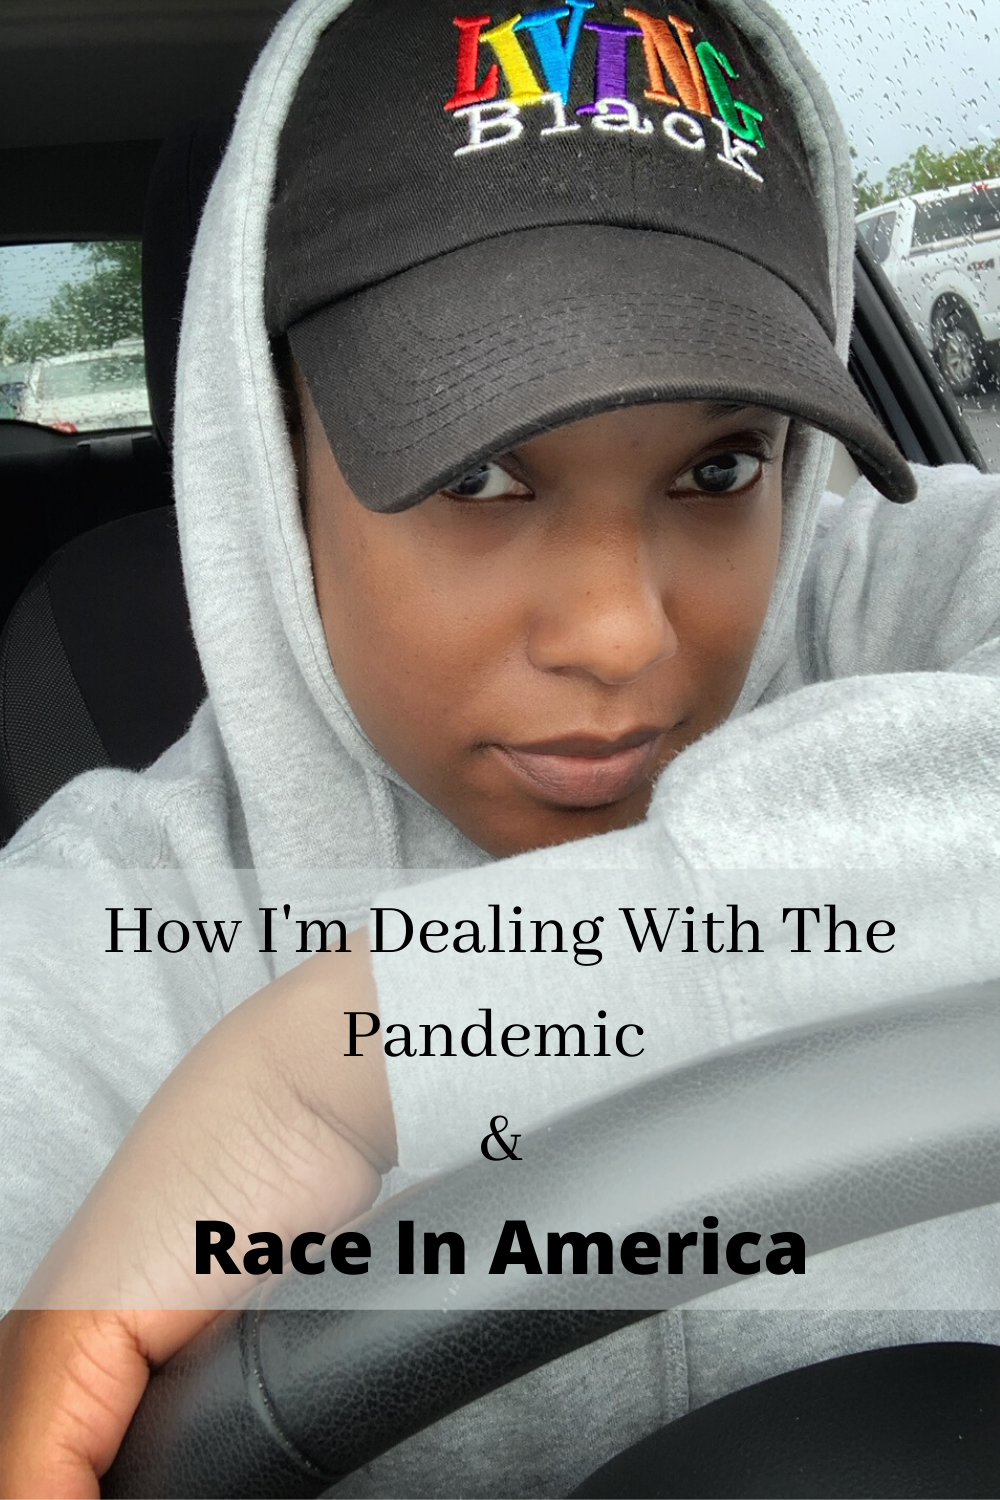 Pandemic & Race In America